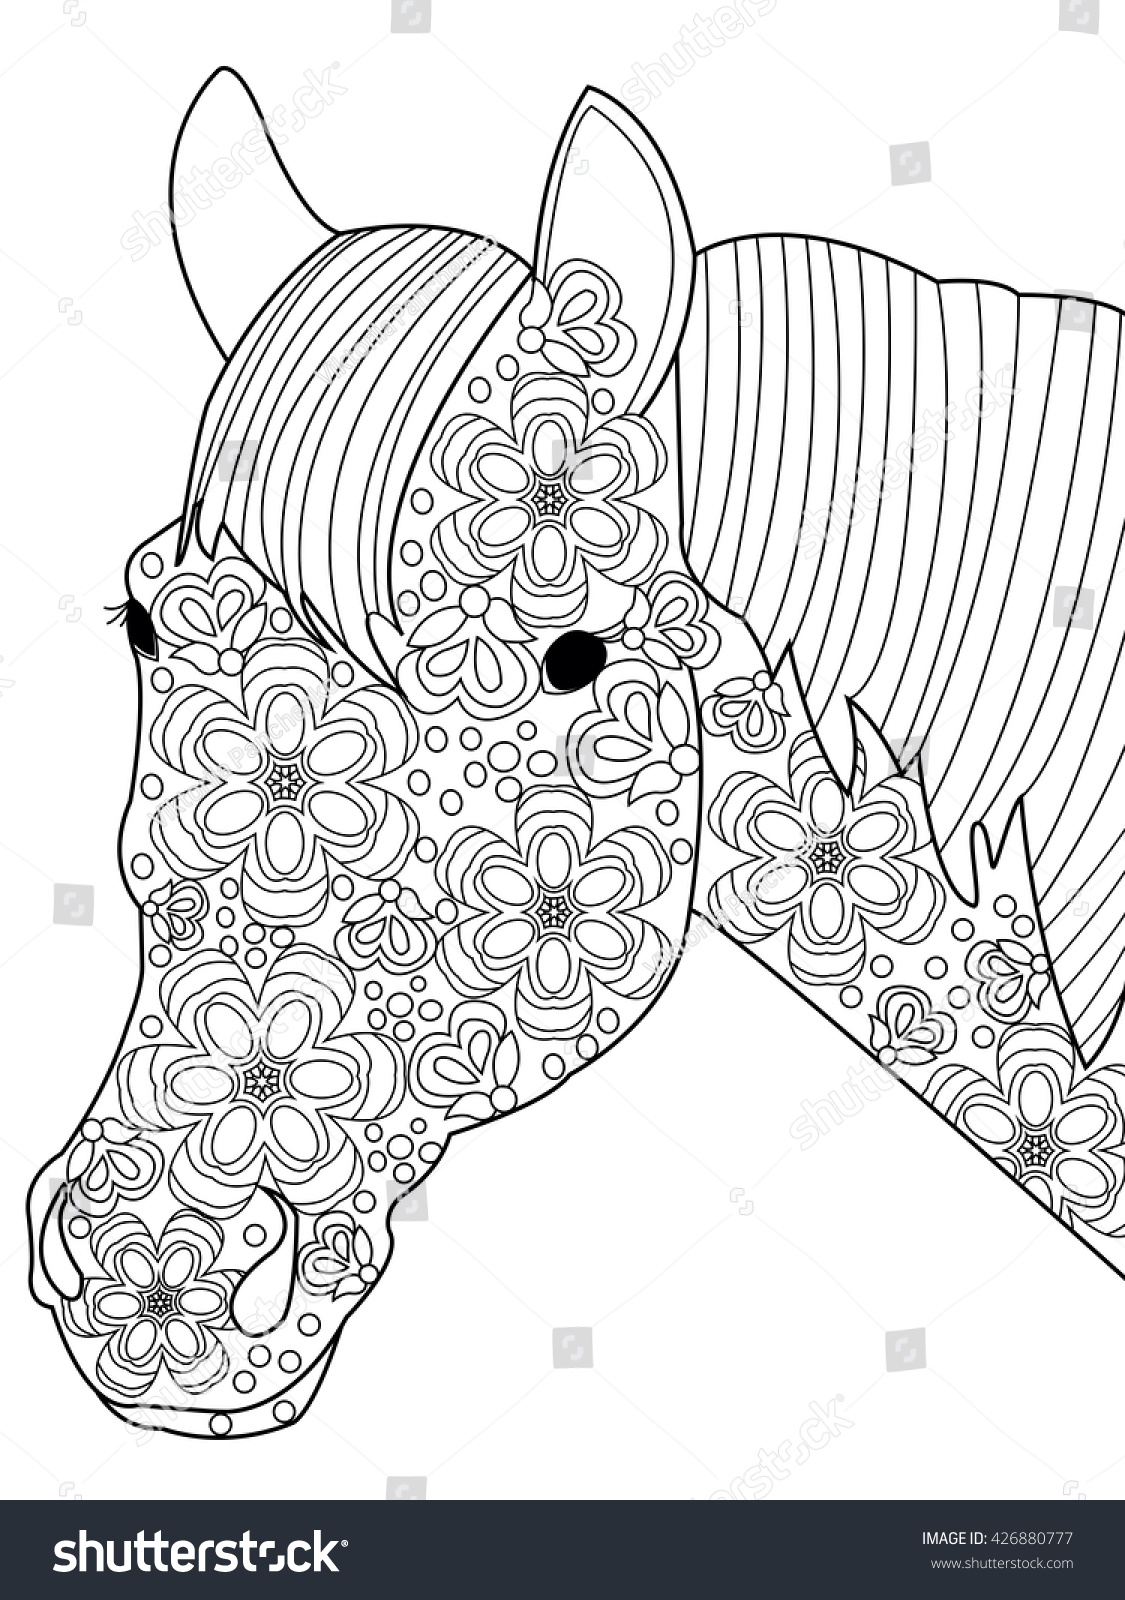 Head Horse Coloring Book For Adults Vector Illustration